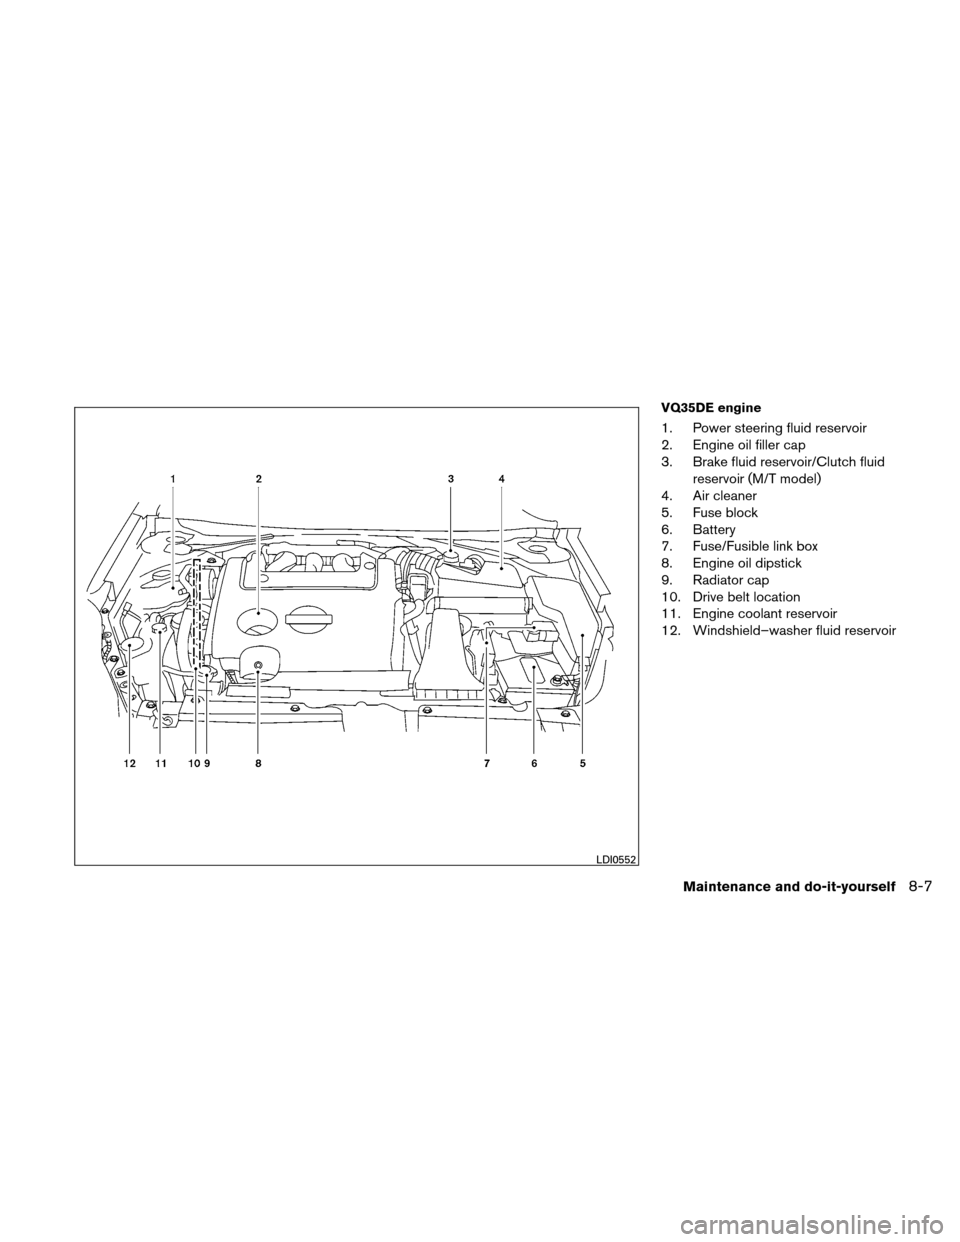 NISSAN ALTIMA COUPE 2010 D32 / 4.G Owners Manual, Page 364